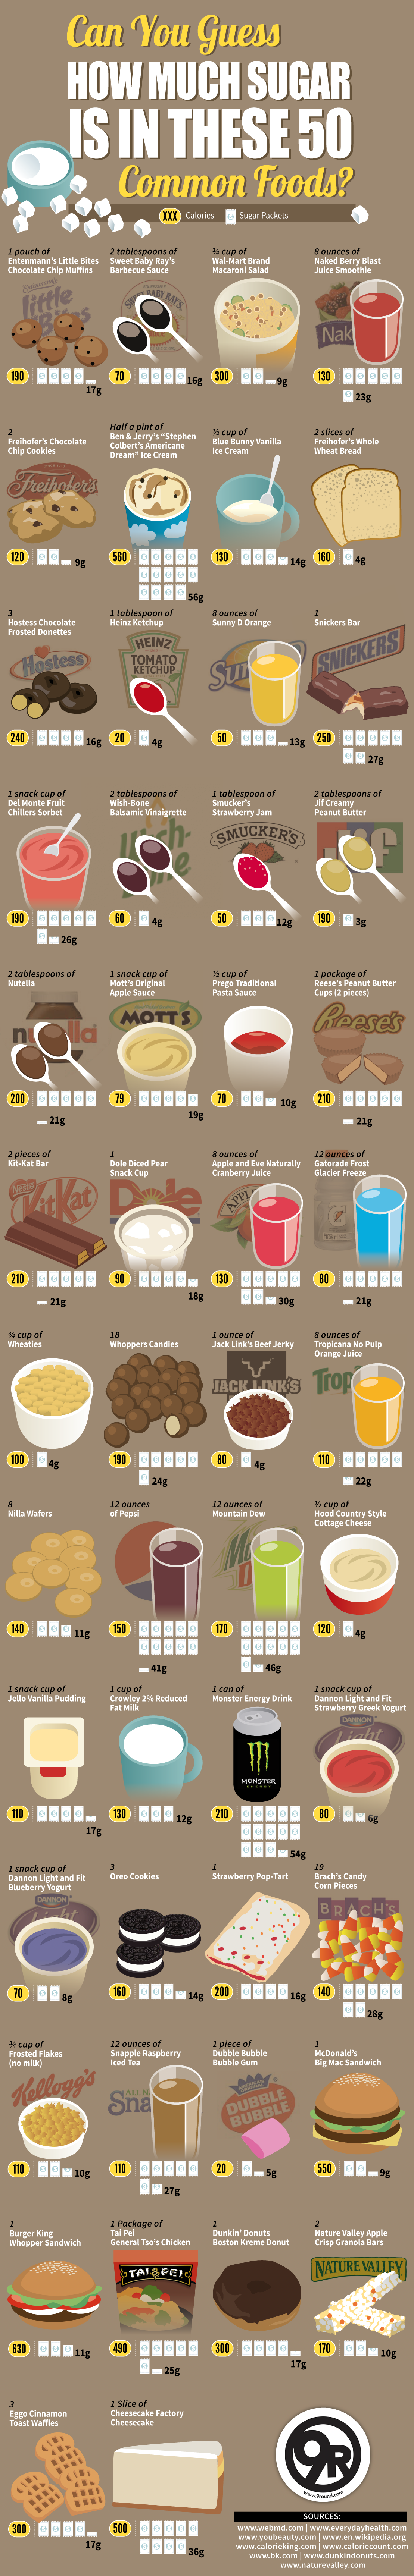 Can You Guess How Much Sugar is in These 50 Common Foods? - 9Round.com - Infographic